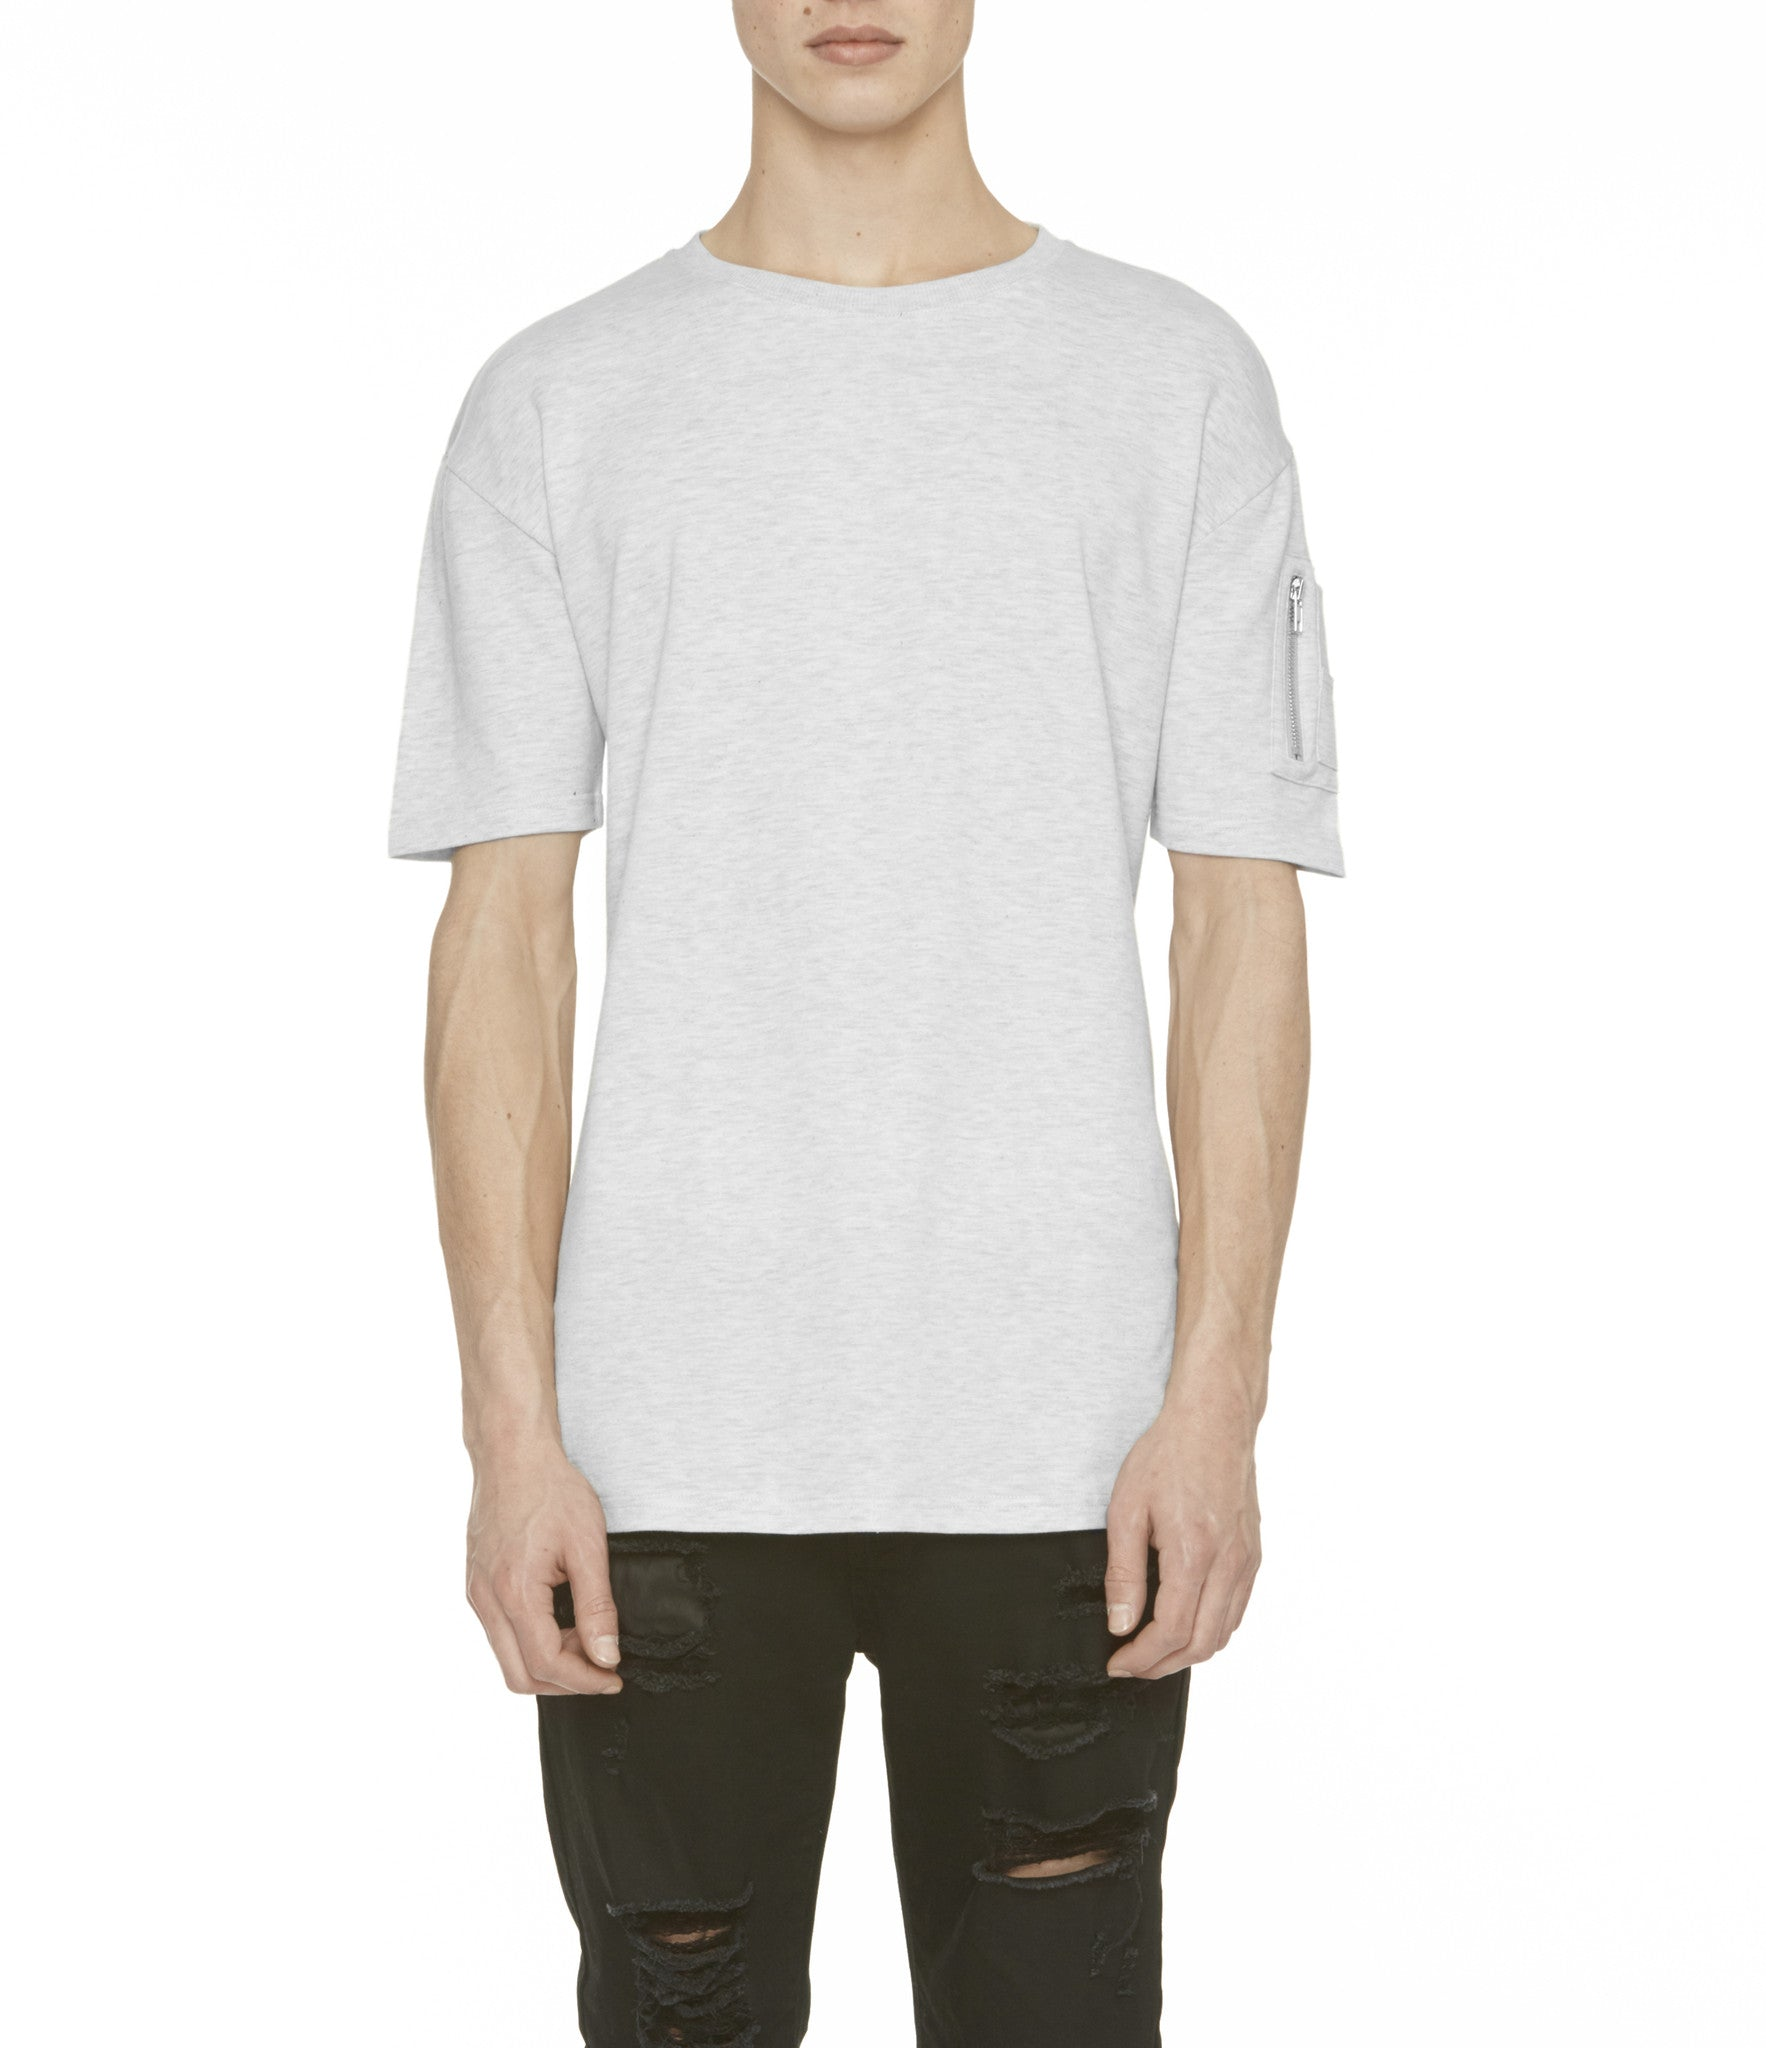 TS222 Drop Shoulder Utility Tee - Heather Grey - underated london - underatedco - 1